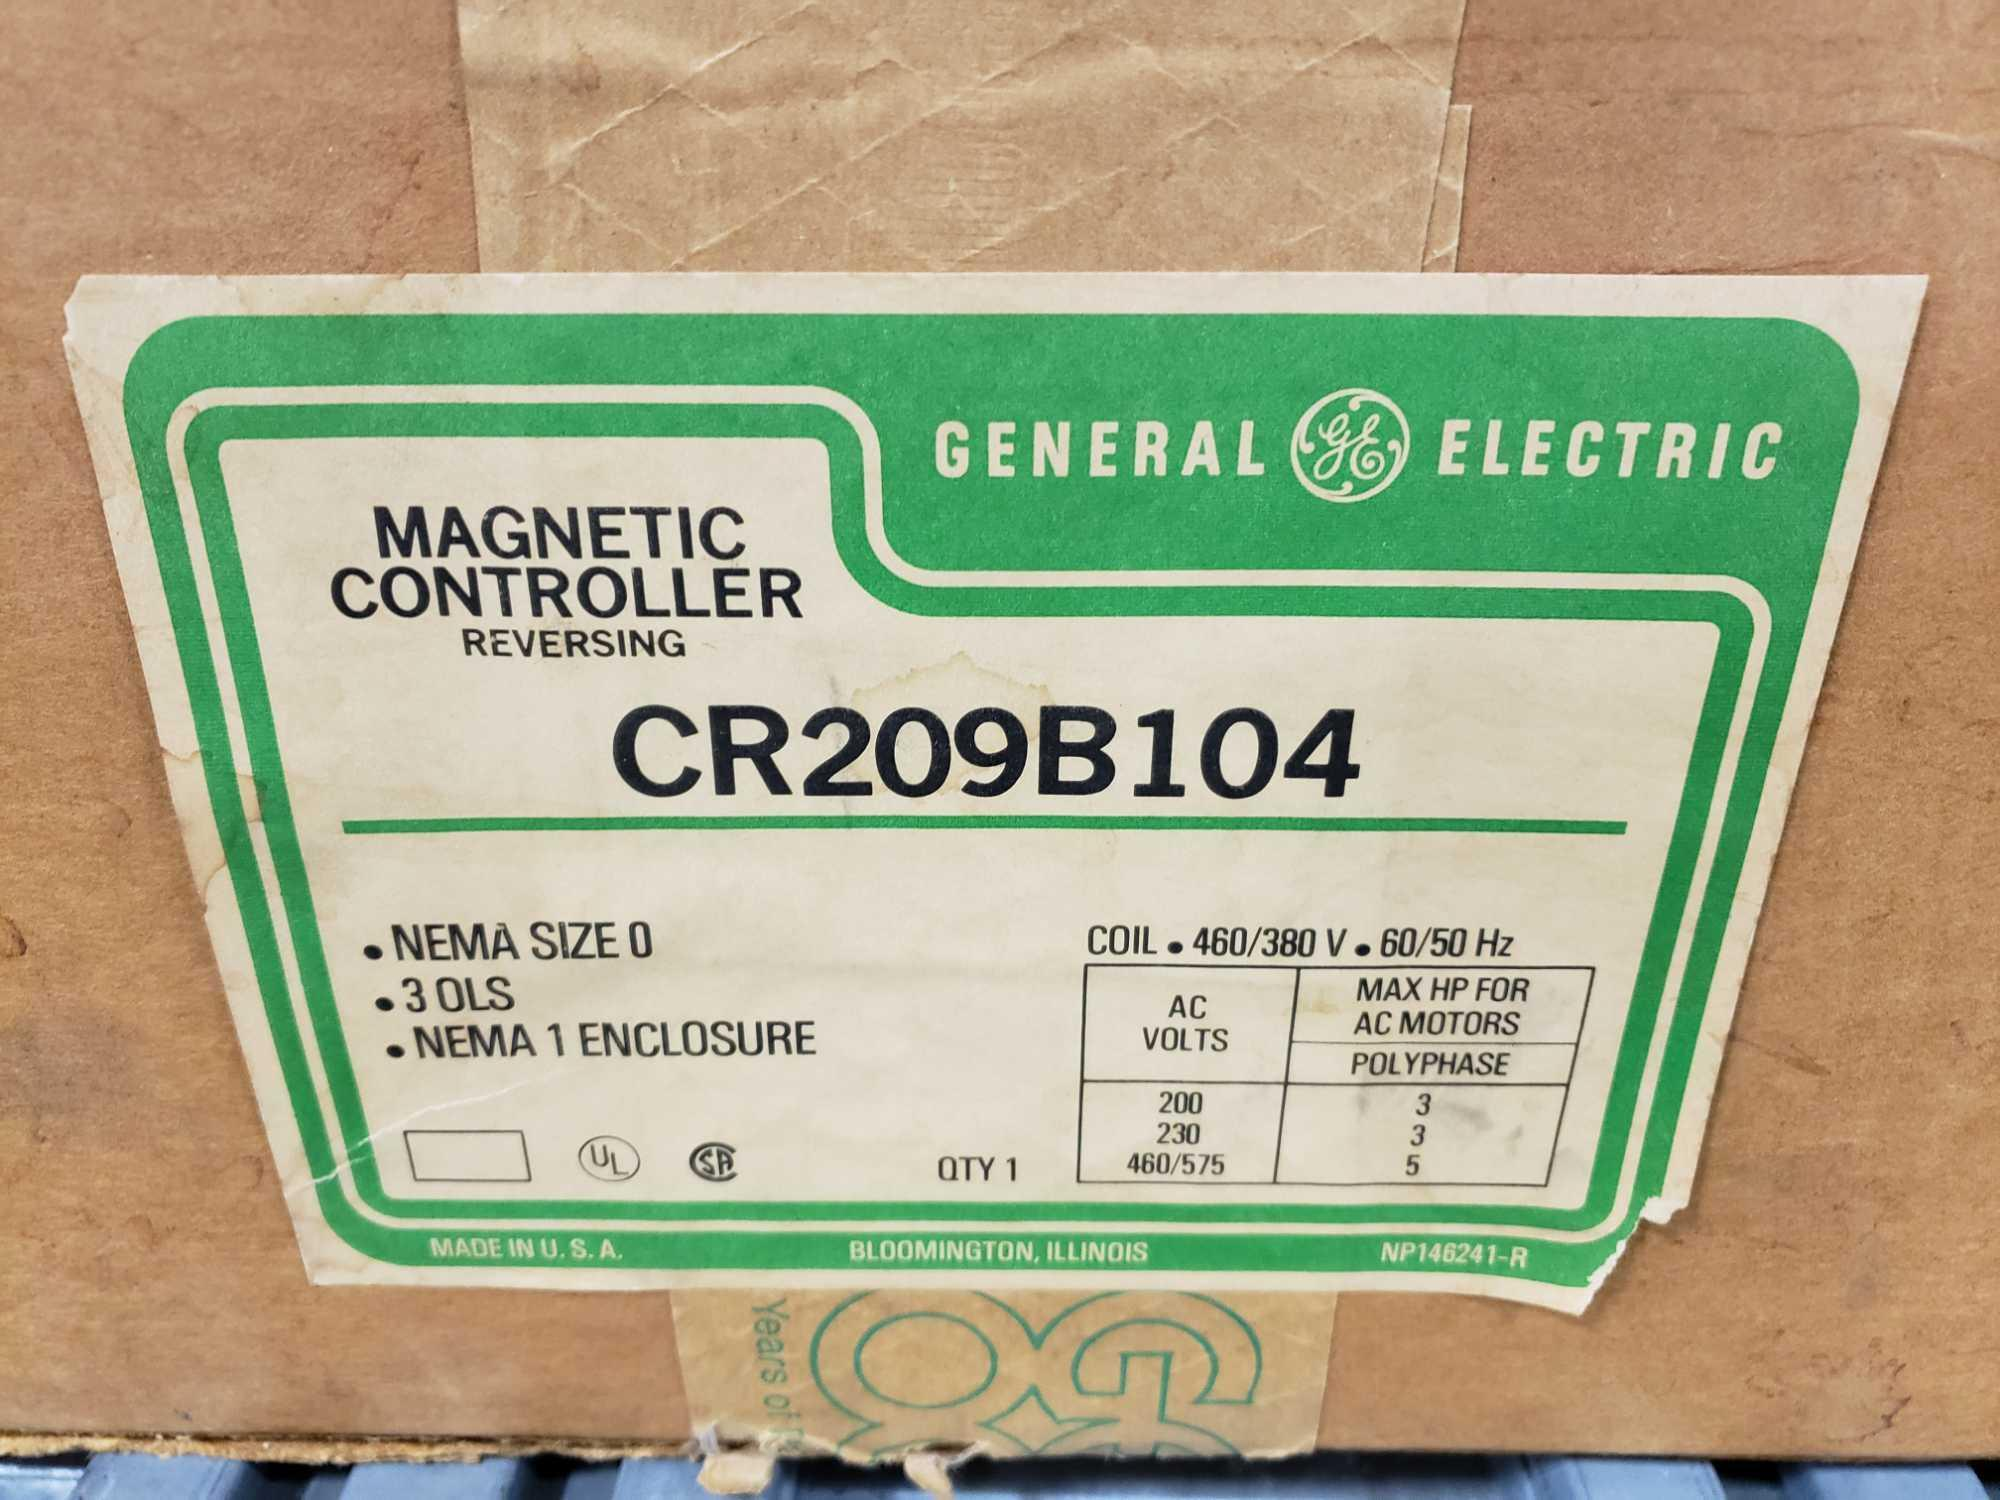 GE magnetic controller reversing contractor CR209B104 Nema size O, nema 1 enclosure. New in box. - Image 2 of 4